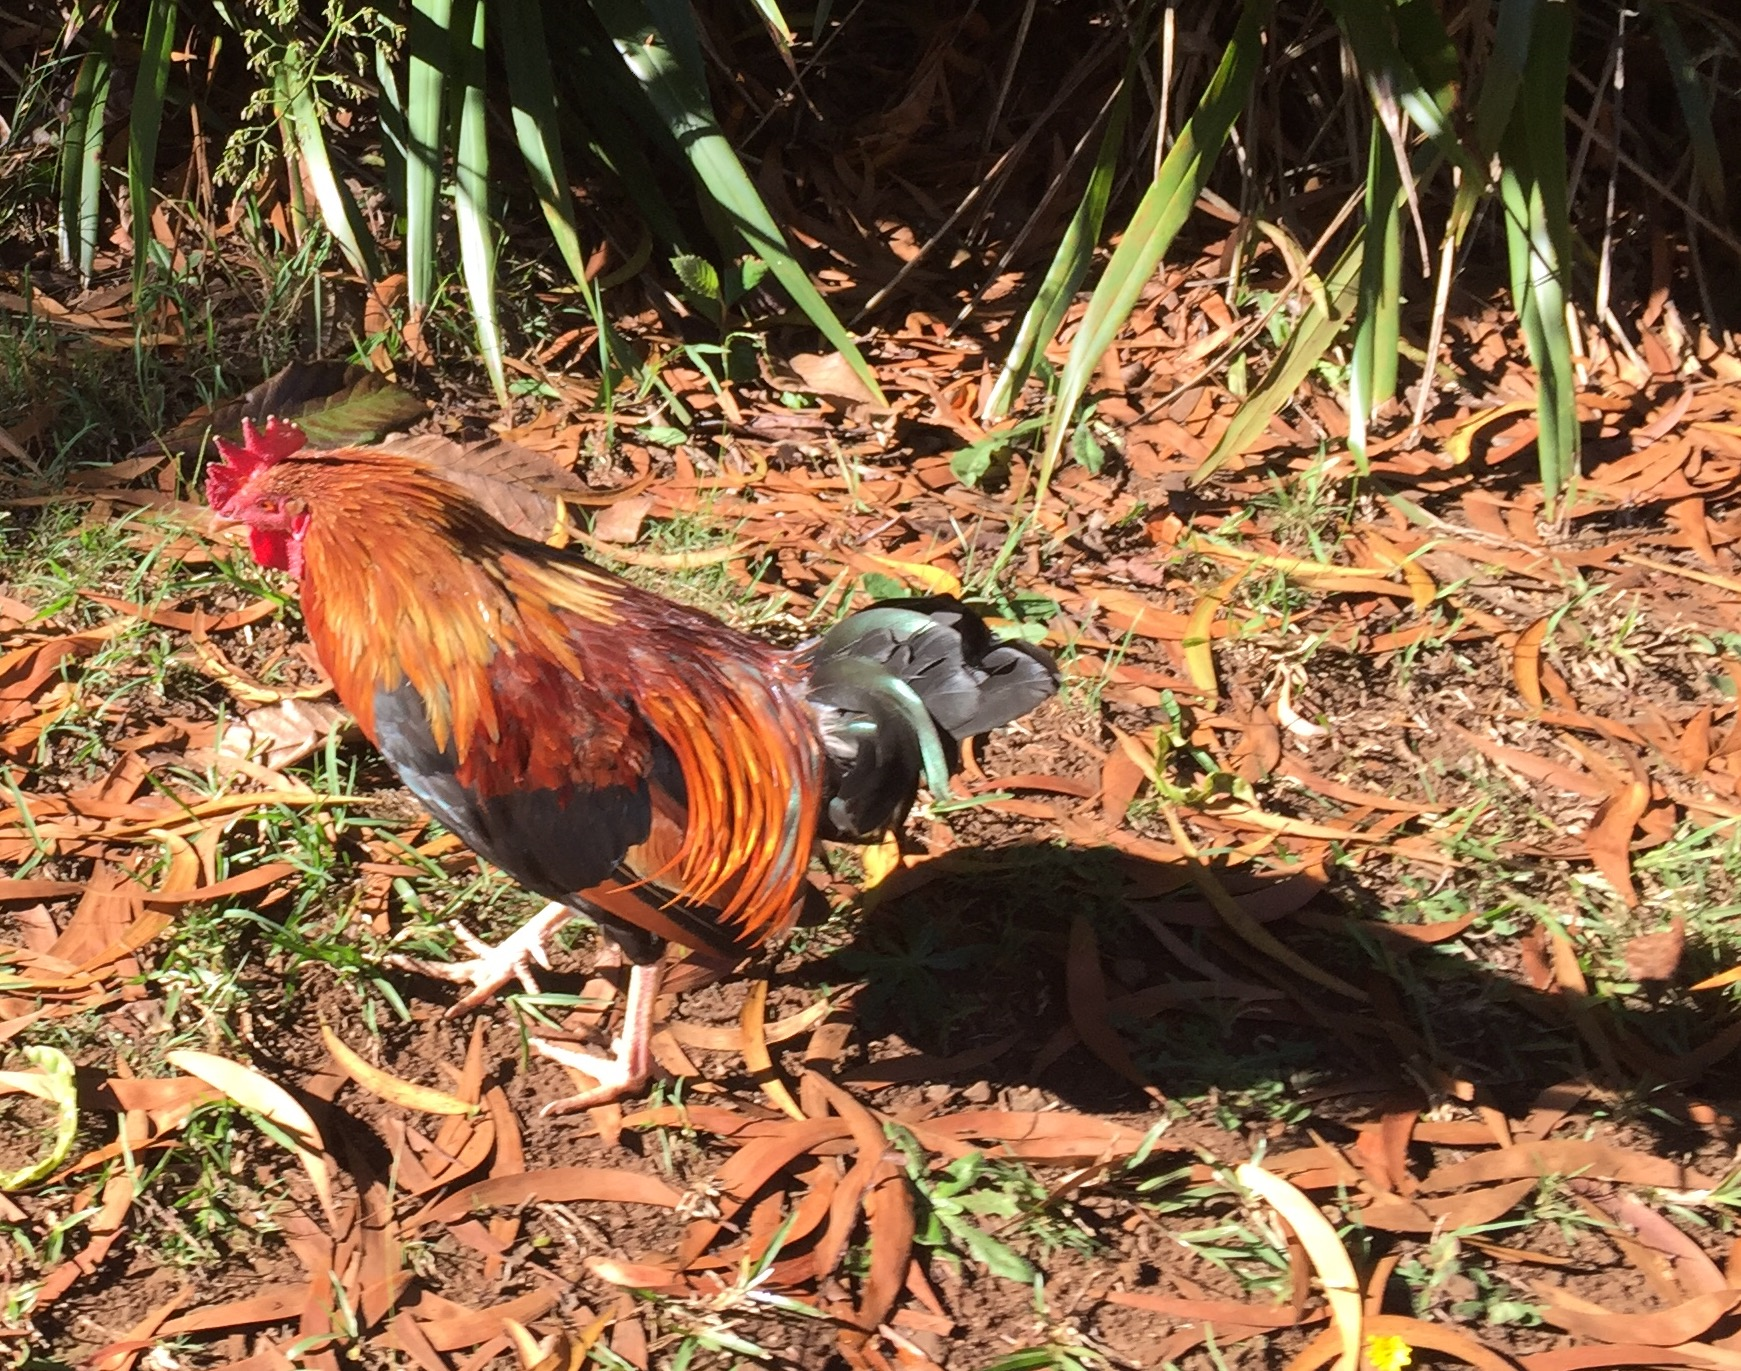 The chicken is the unofficial bird of Kauai. The ubiquitous chicken crows at all times of the night and roosts in the wild. But their saving grace is that they eat bugs, including those nasty centipedes.